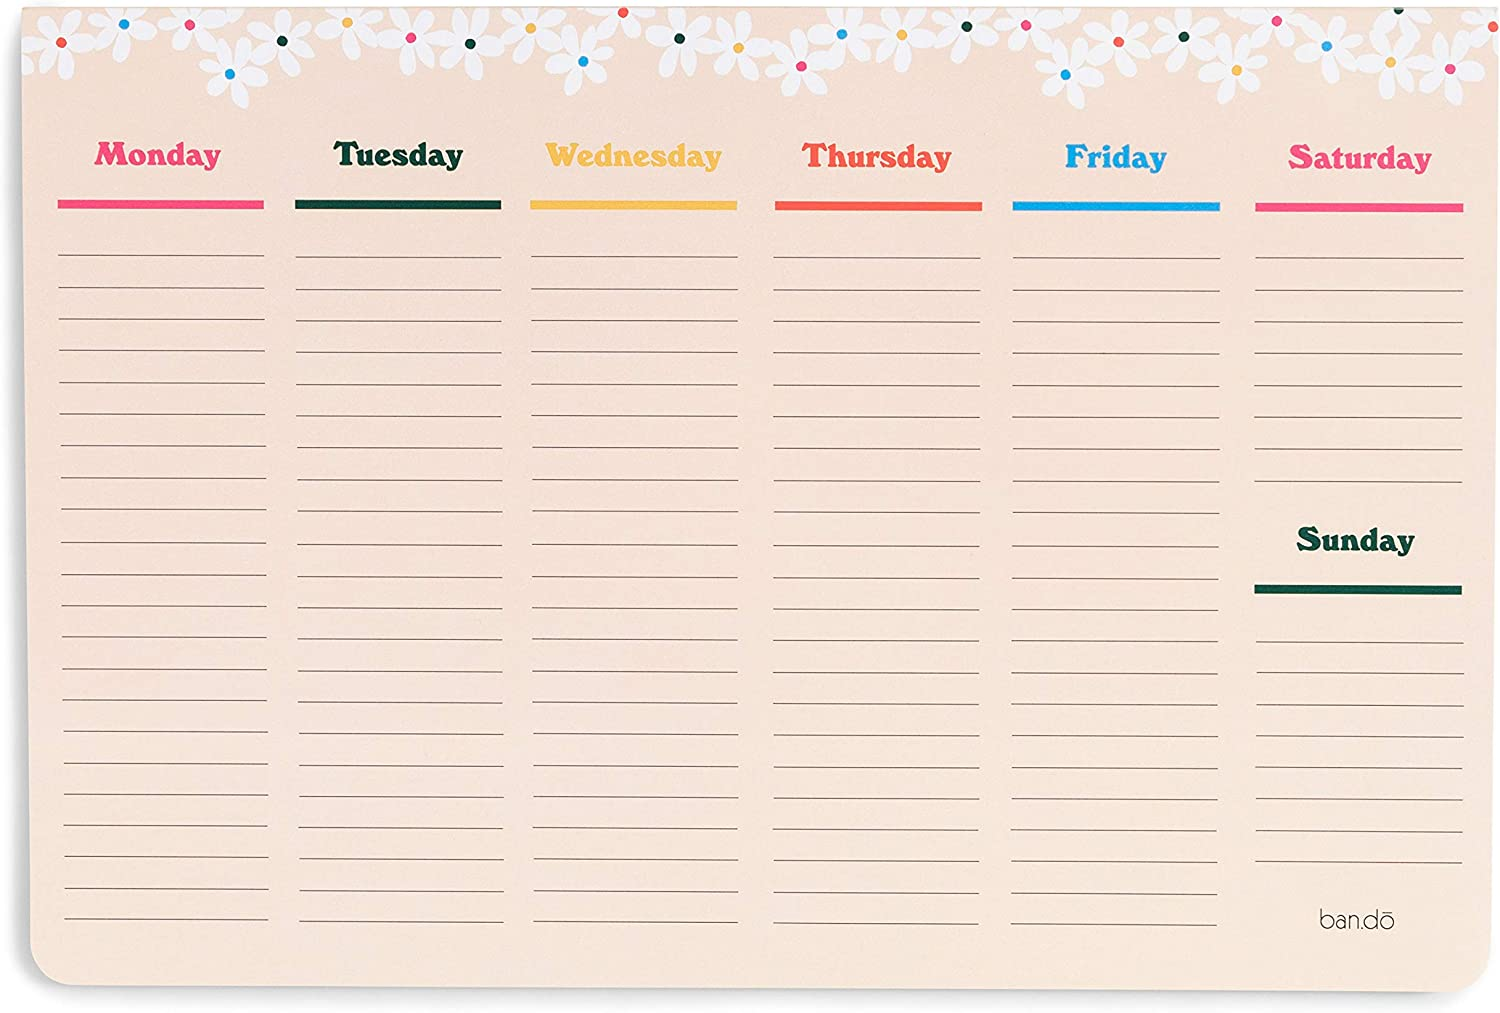 ban.do Week-to-Week Desktop Notepad, Desk Calendar with 52 Undated Sheets for 1 Year of Planning, Daisies (Mega)